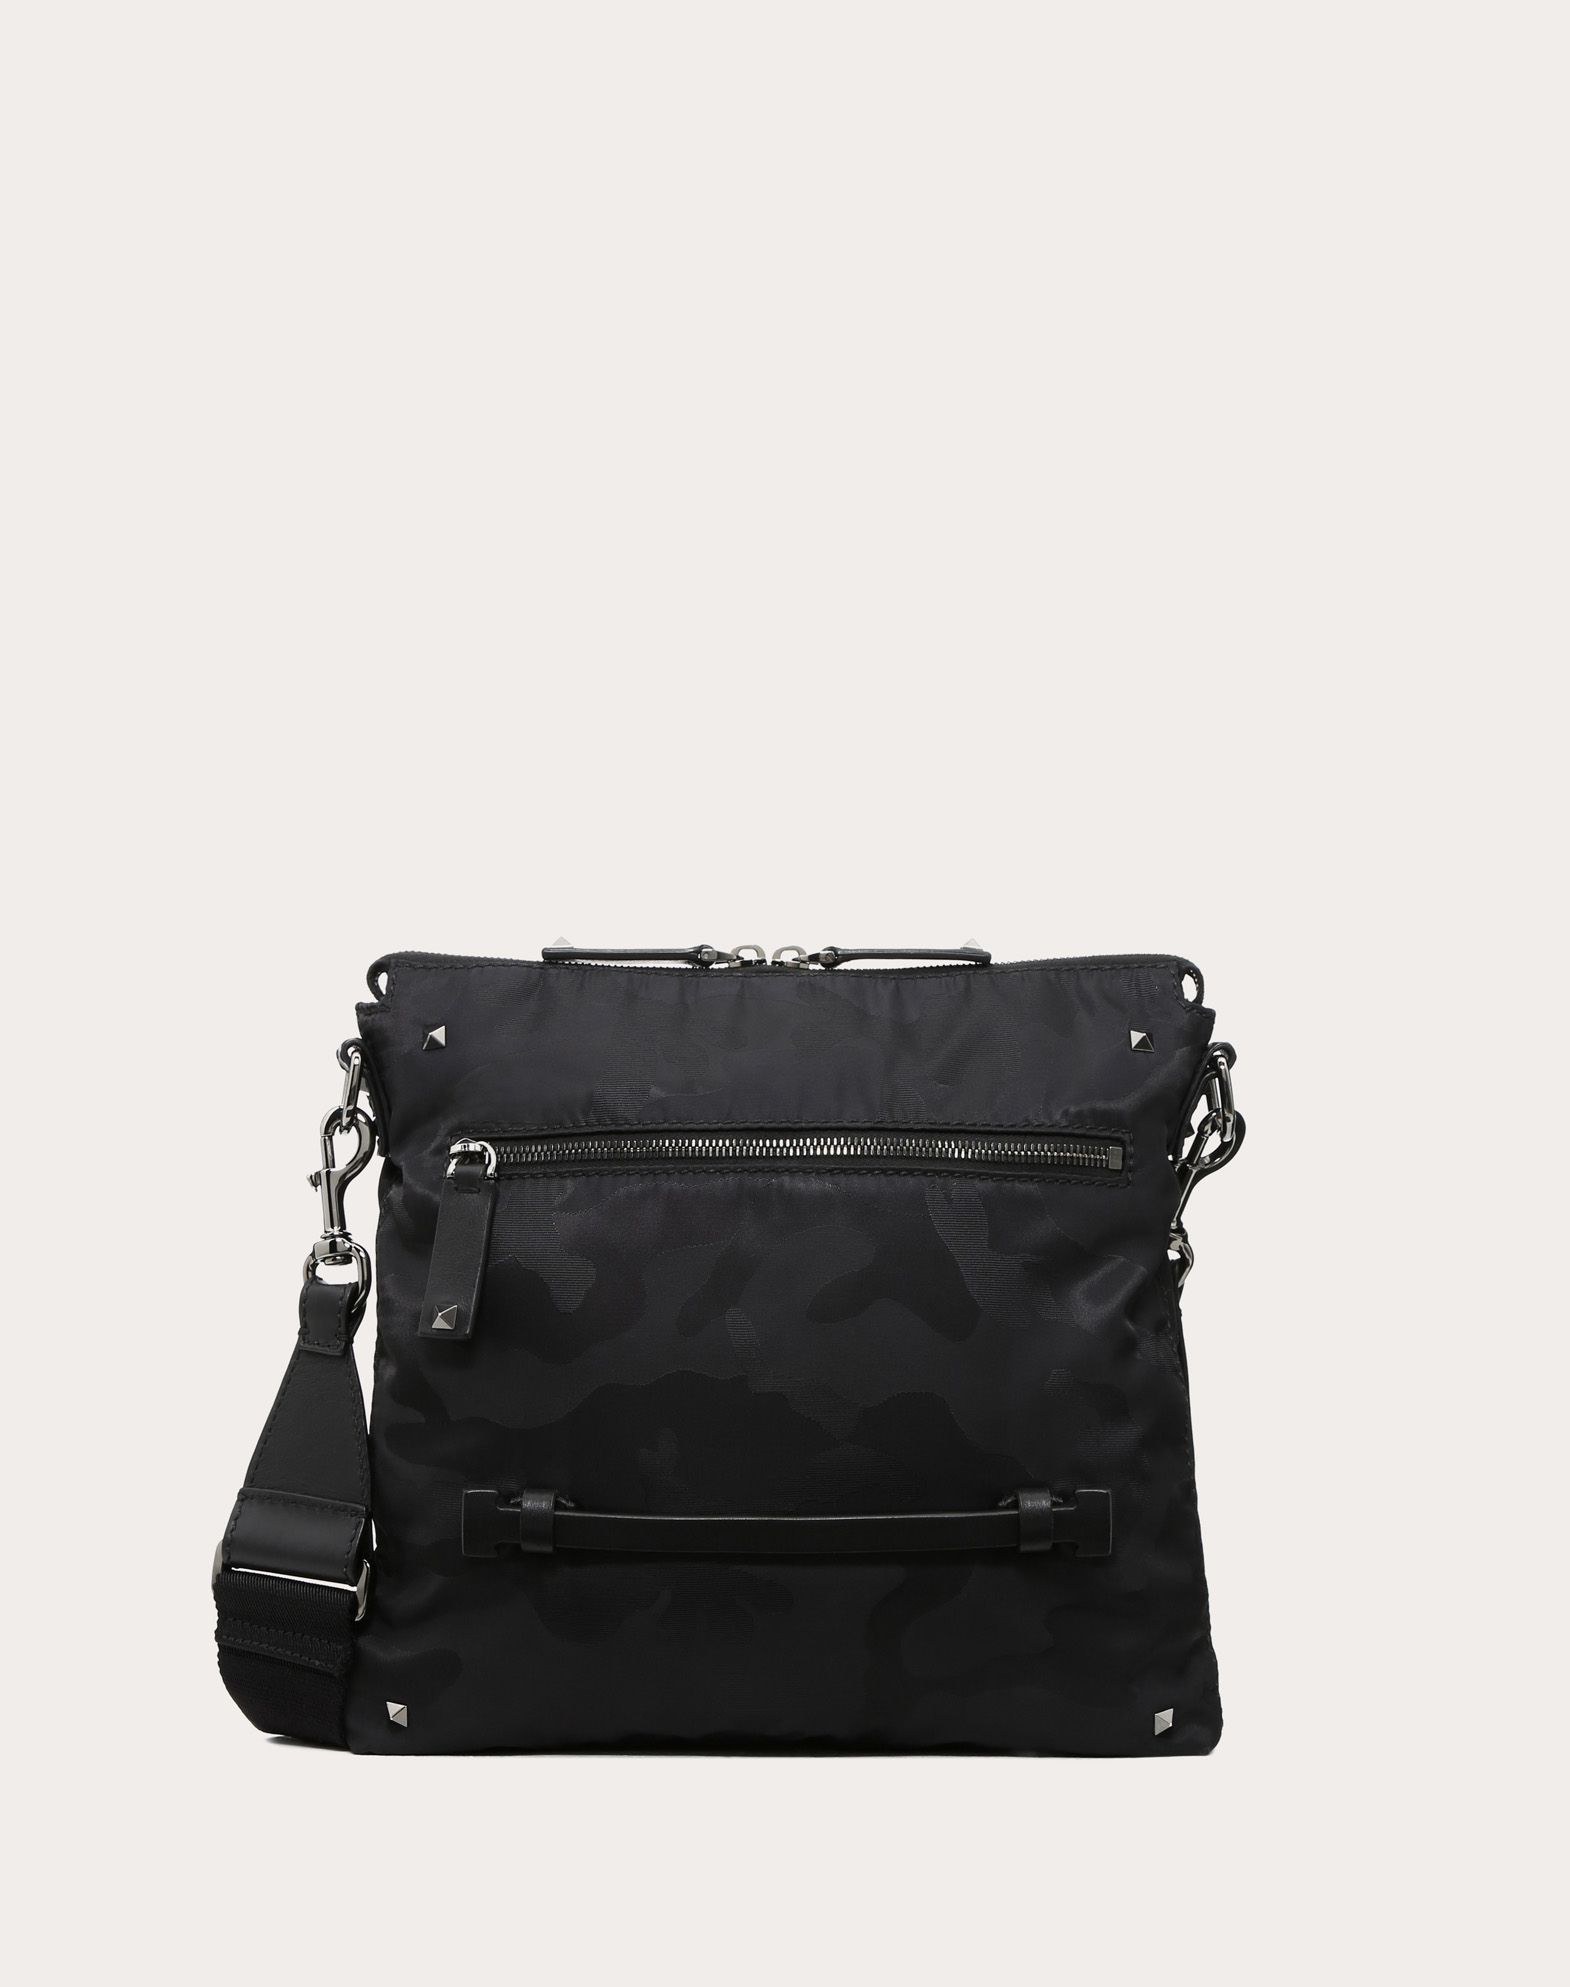 NYLON CAMOUFLAGE NOIR CROSSBODY BAG